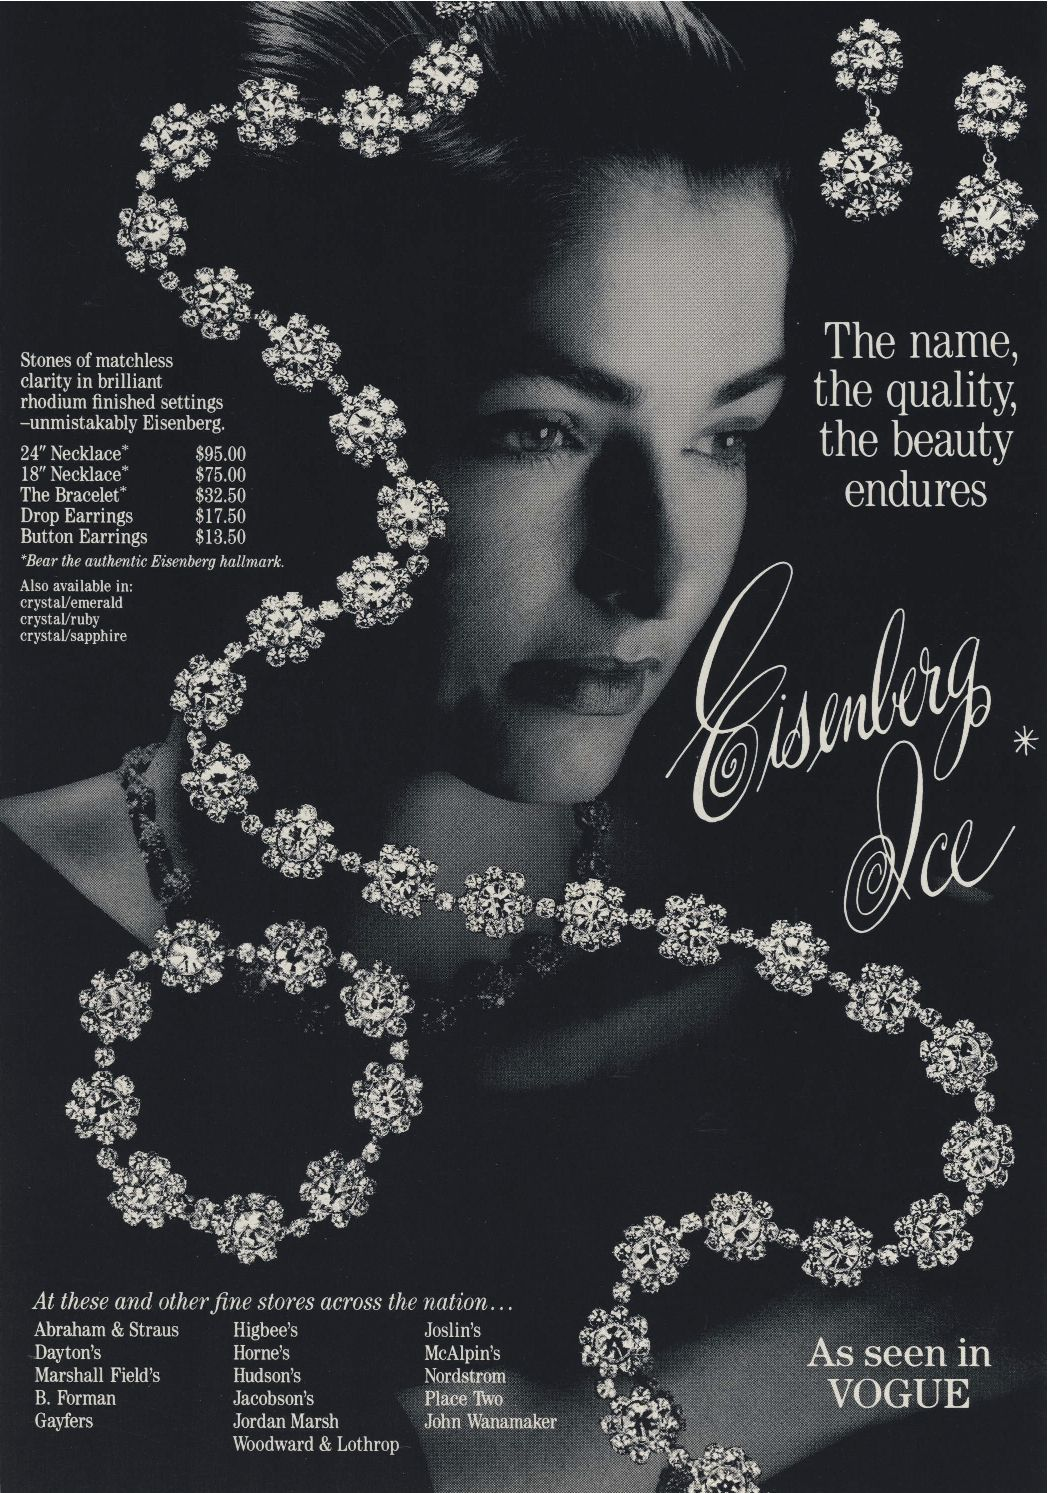 Magazine ads in the 1950s hyped the elegance of Eisenberg Ice.